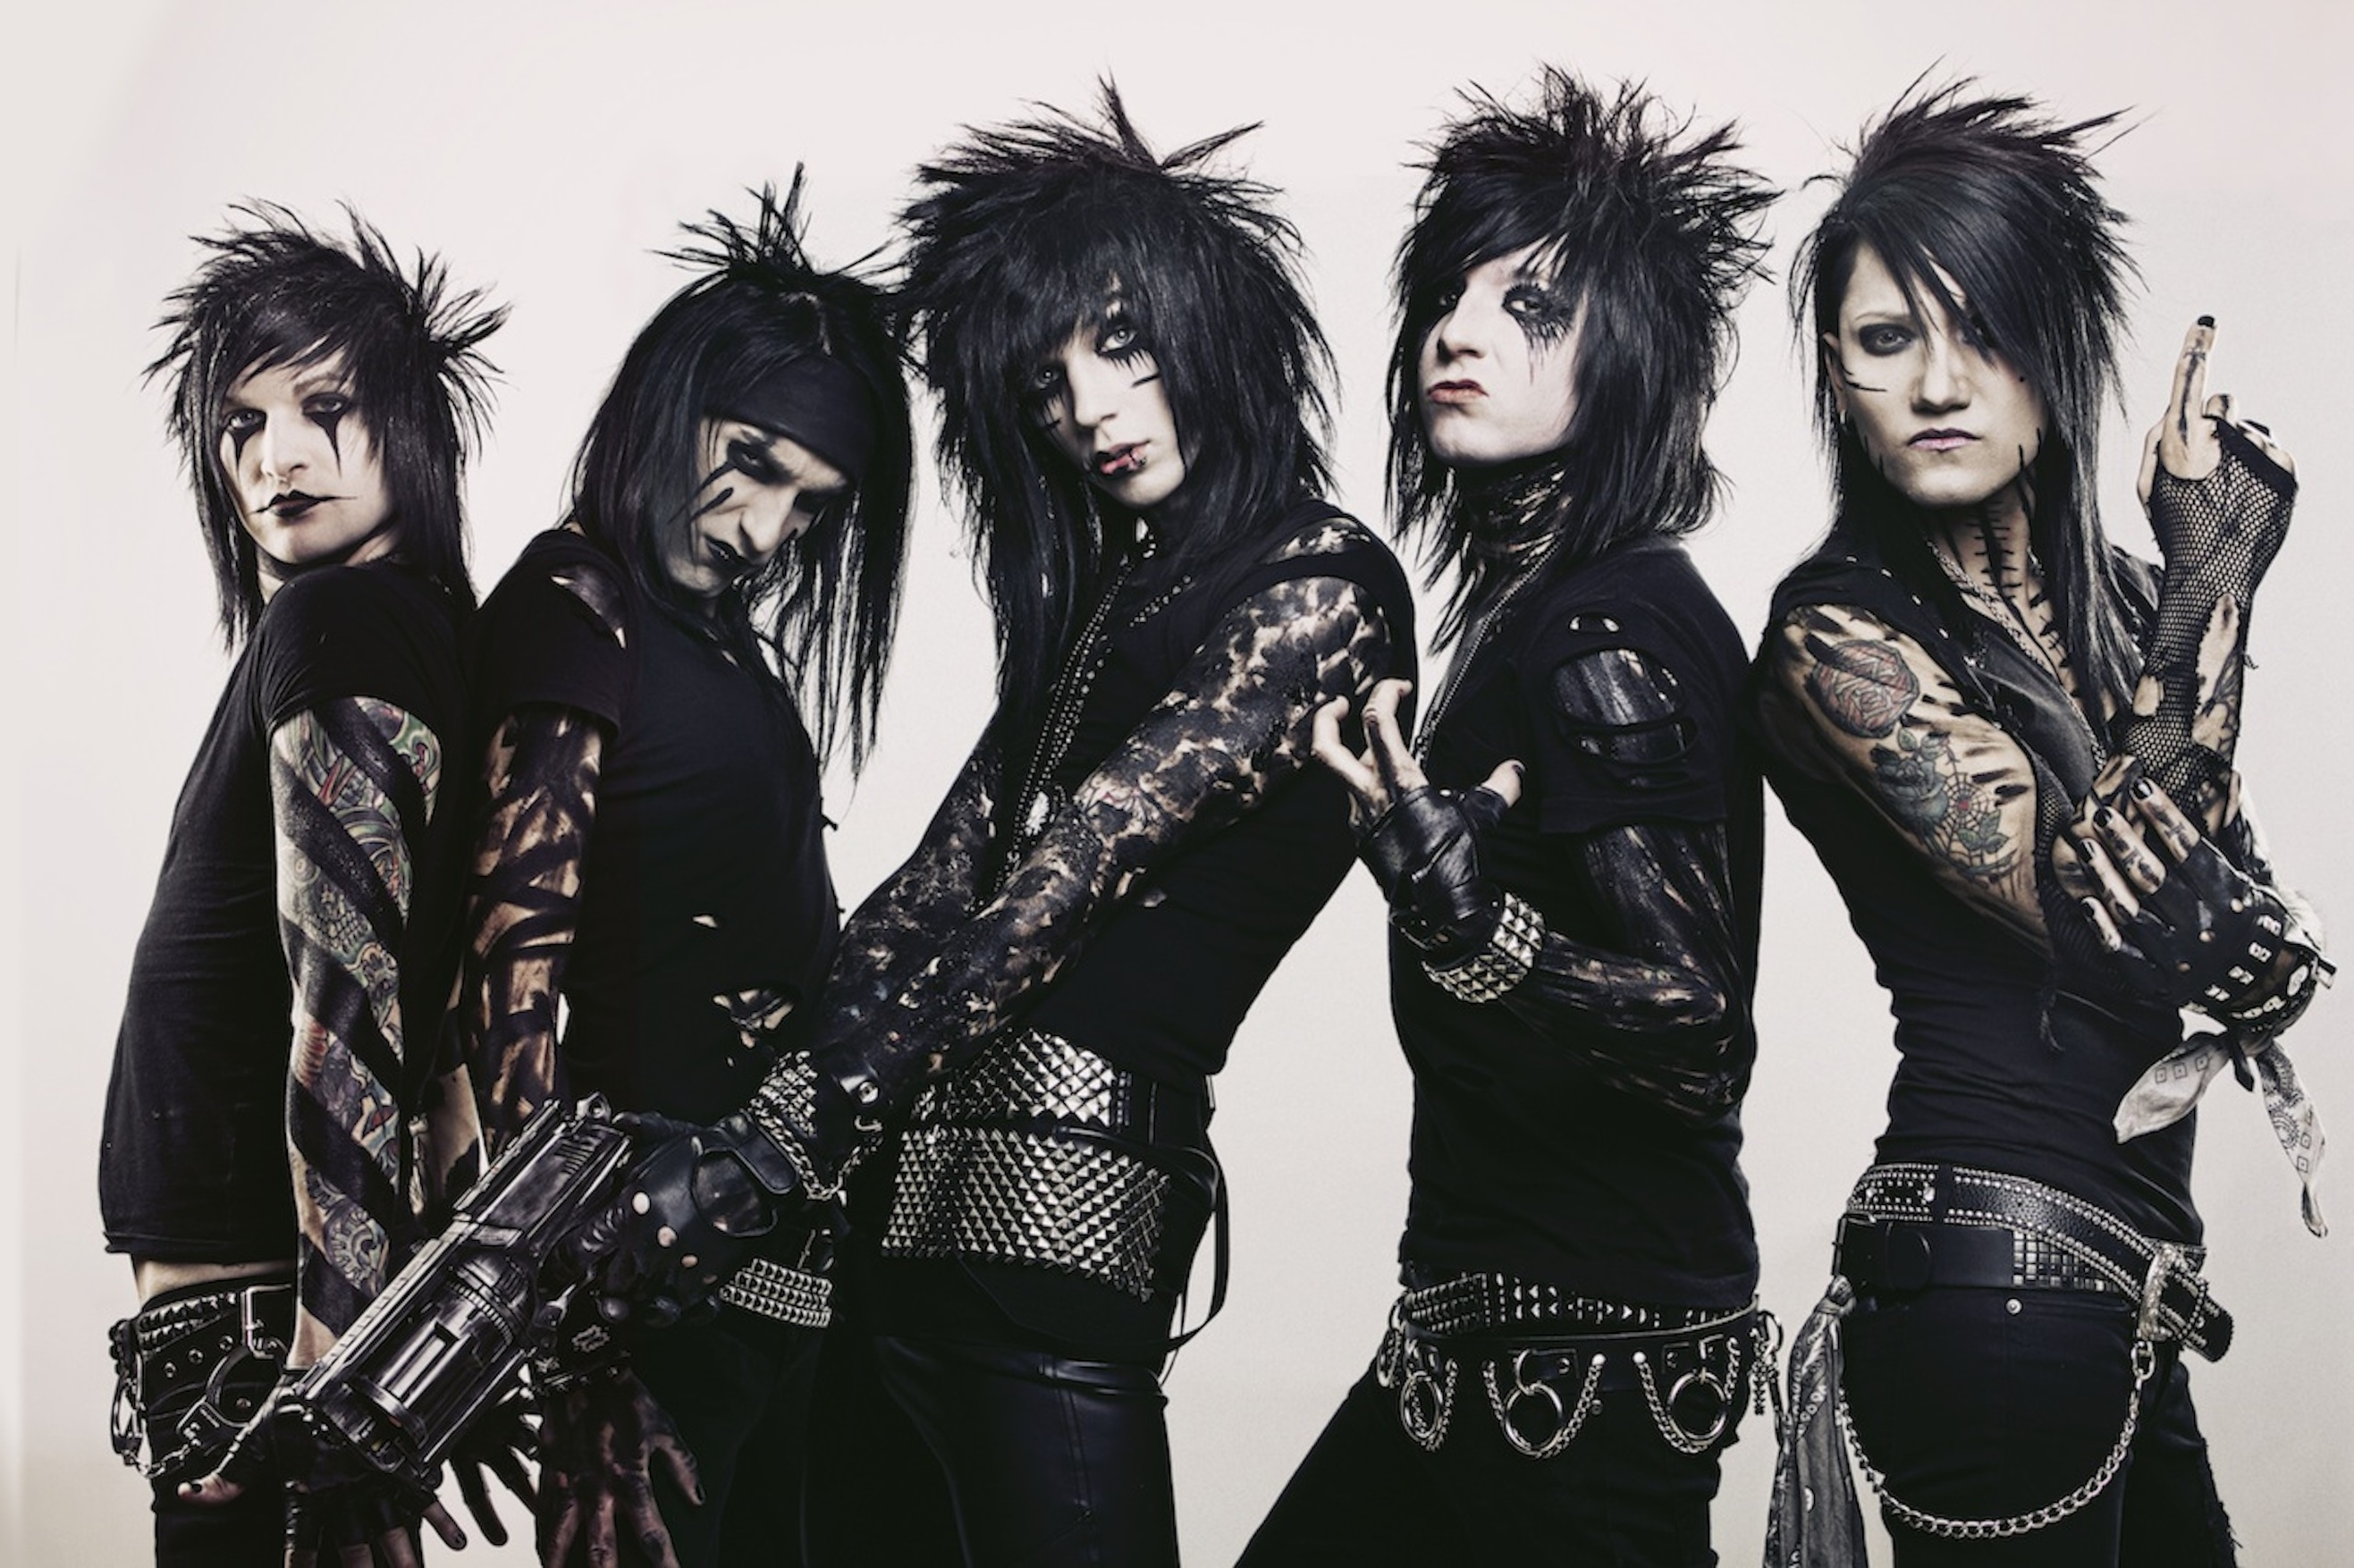 Black Veil Brides sidewaves announced